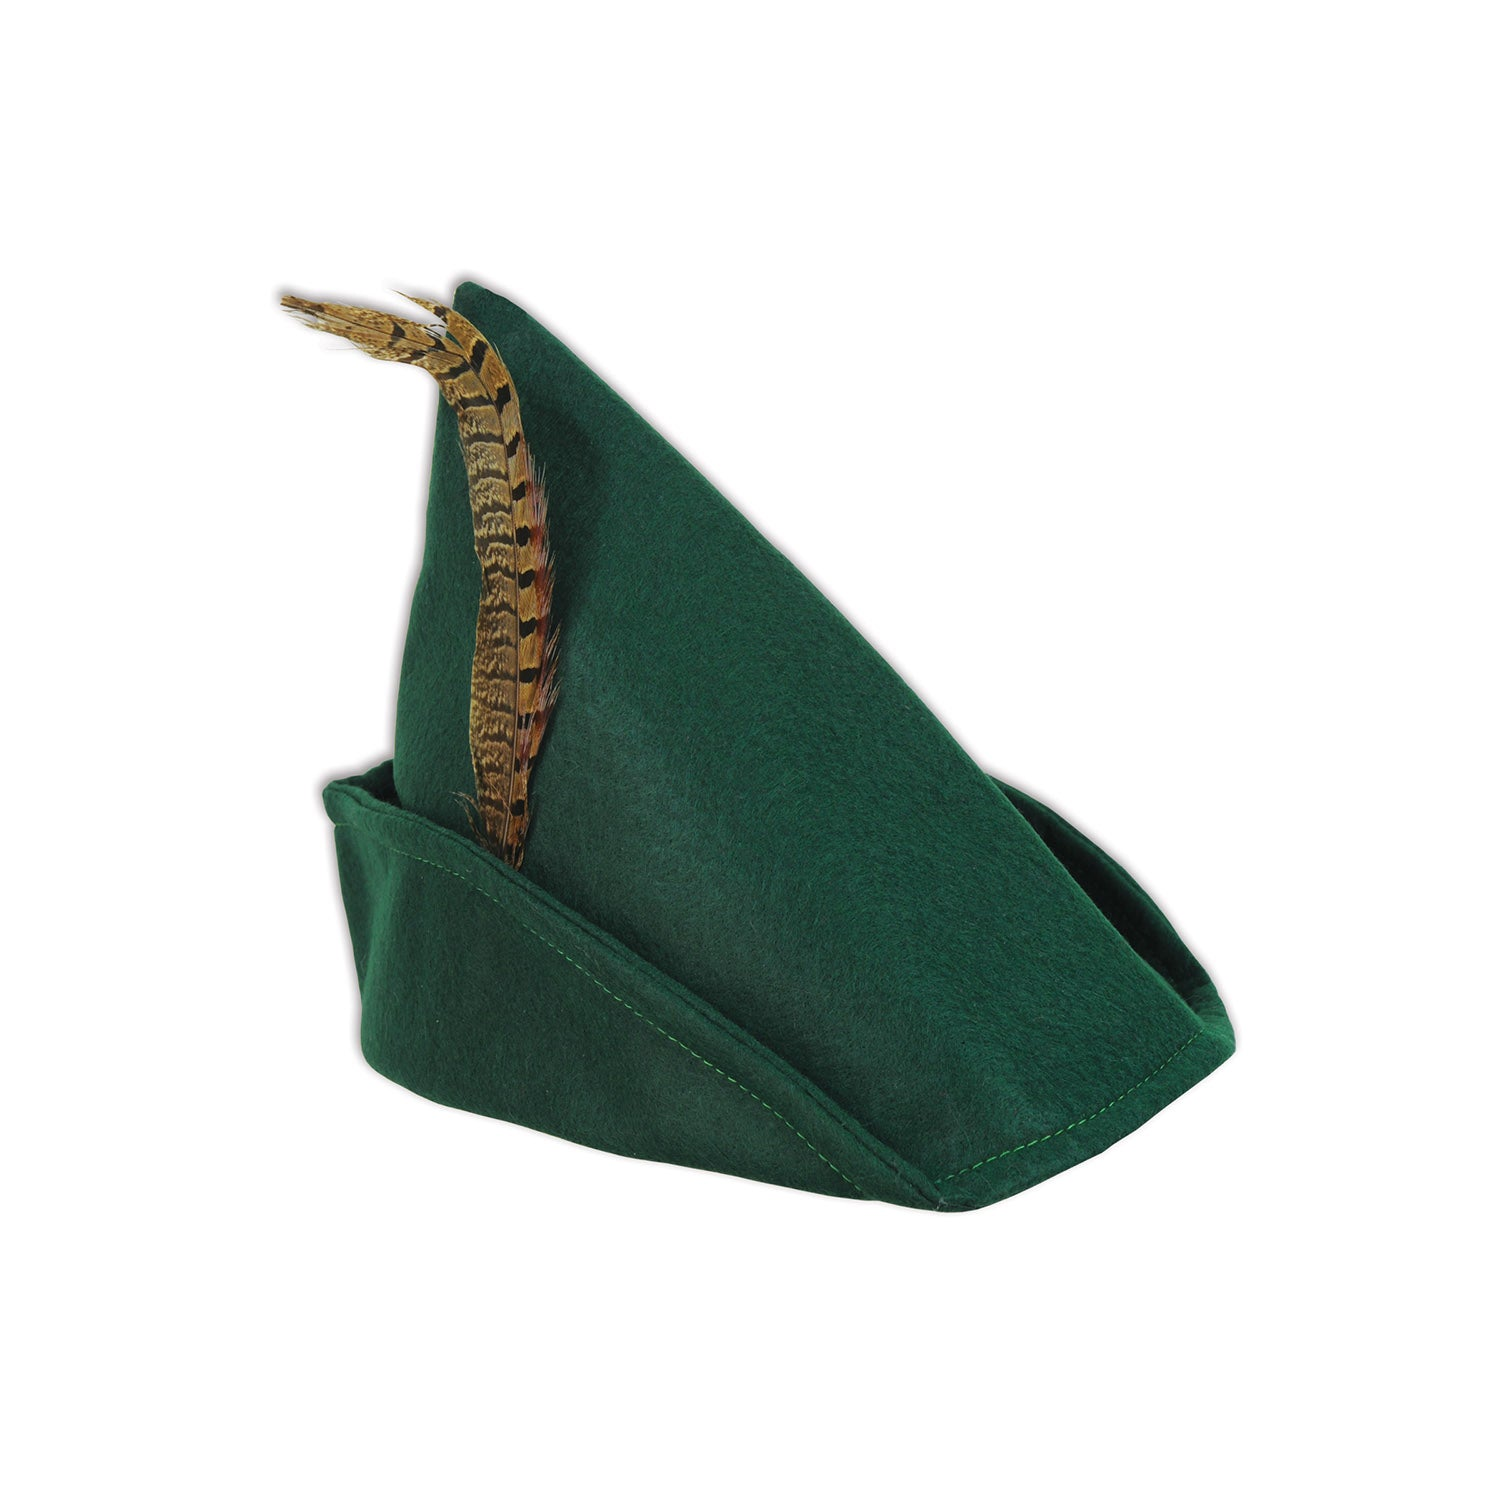 466a048389c 12 Case) Beistle Felt Robin Hood Hat - Bulk Party Supplies